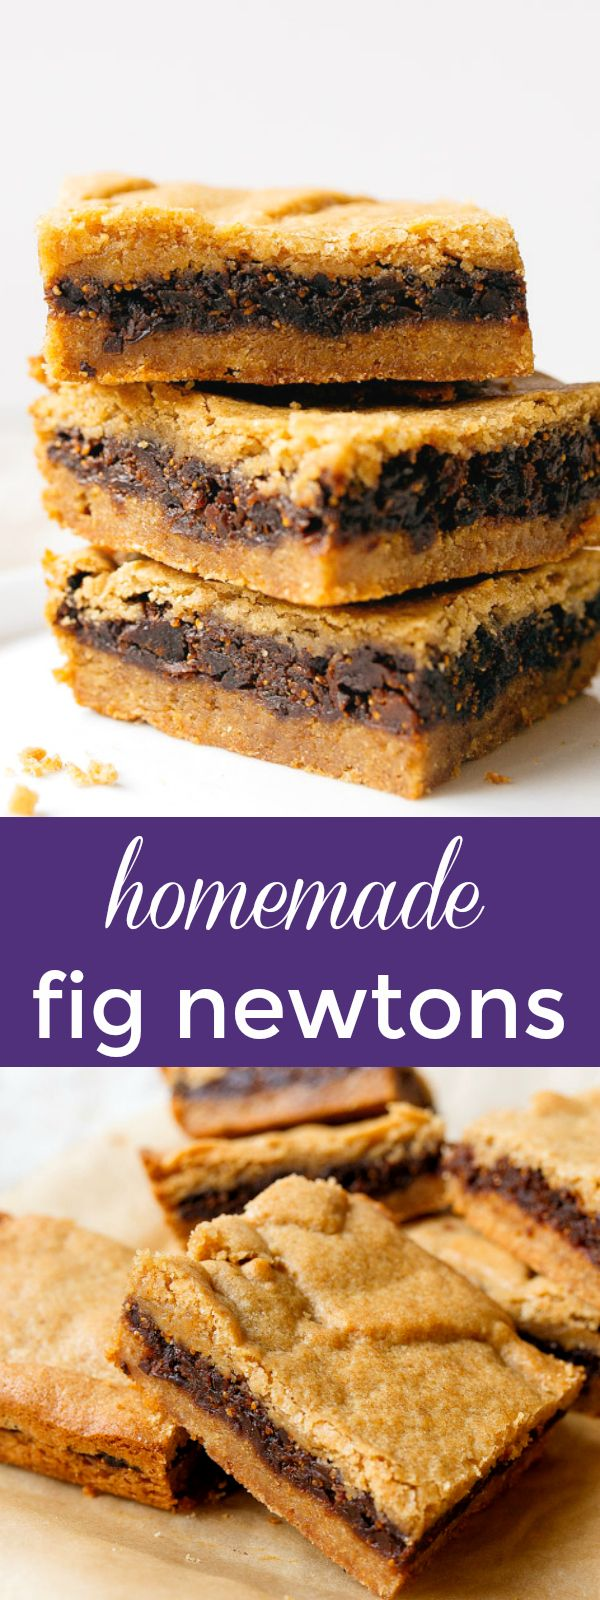 Homemade fig newtons | Posted By: DebbieNet.com